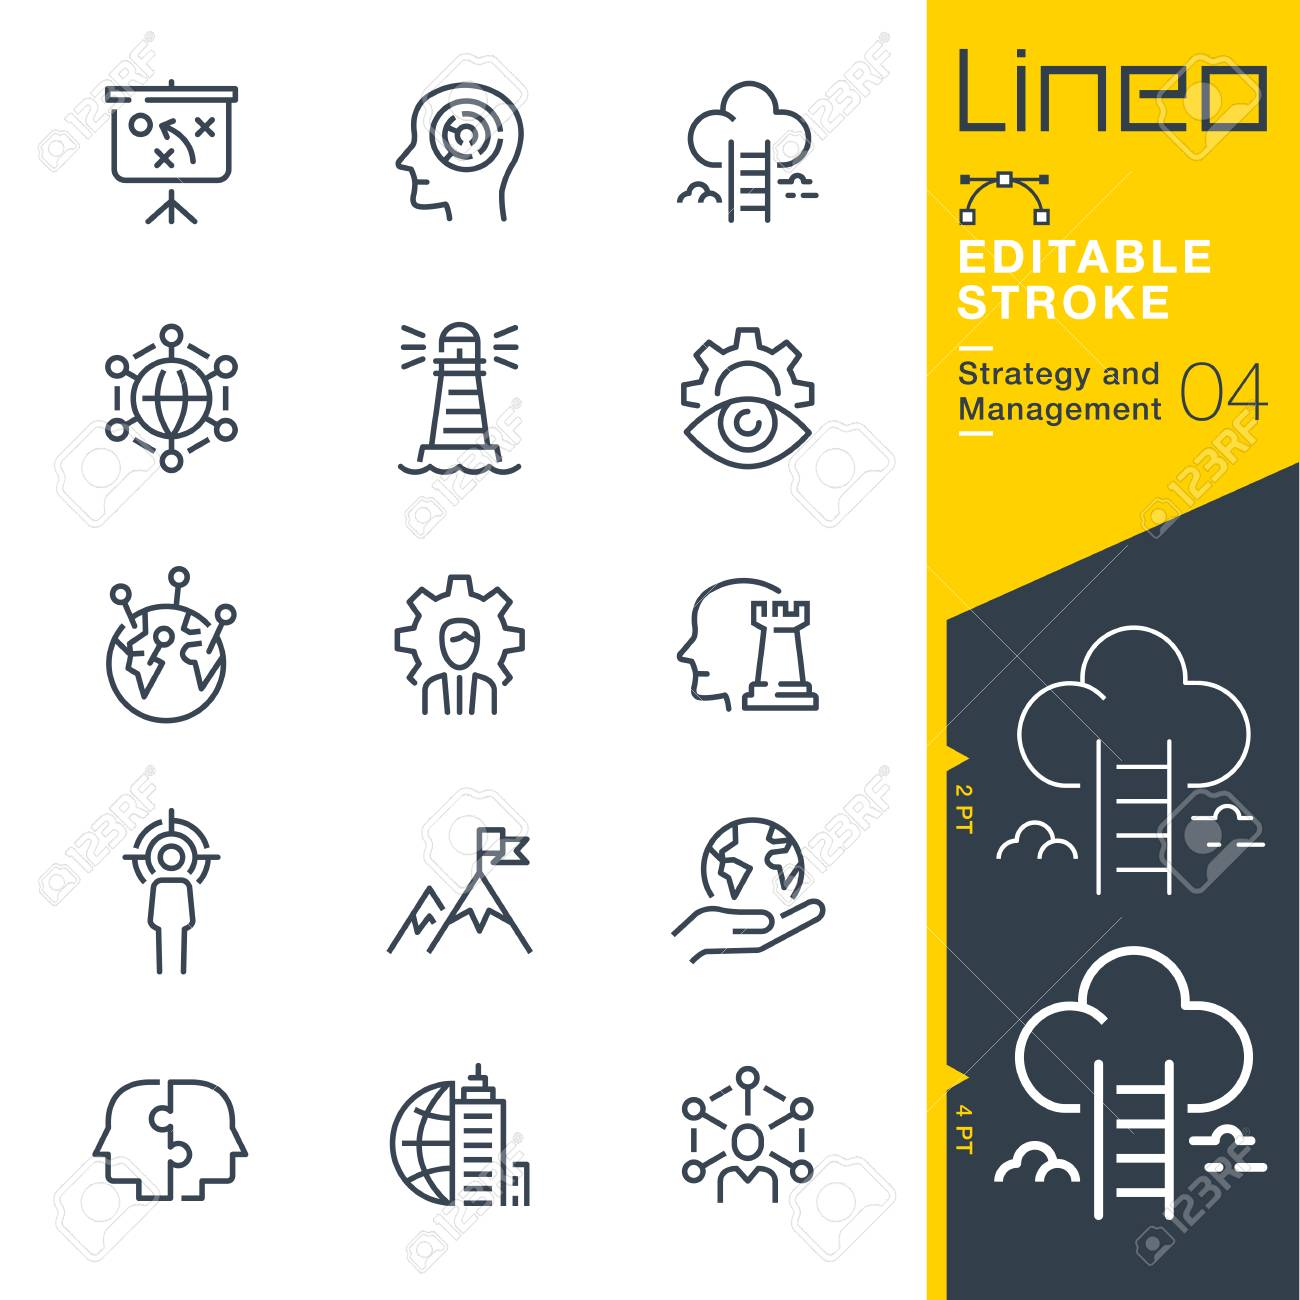 Lineo Editable Stroke Strategy and Management outline icons - 97873660